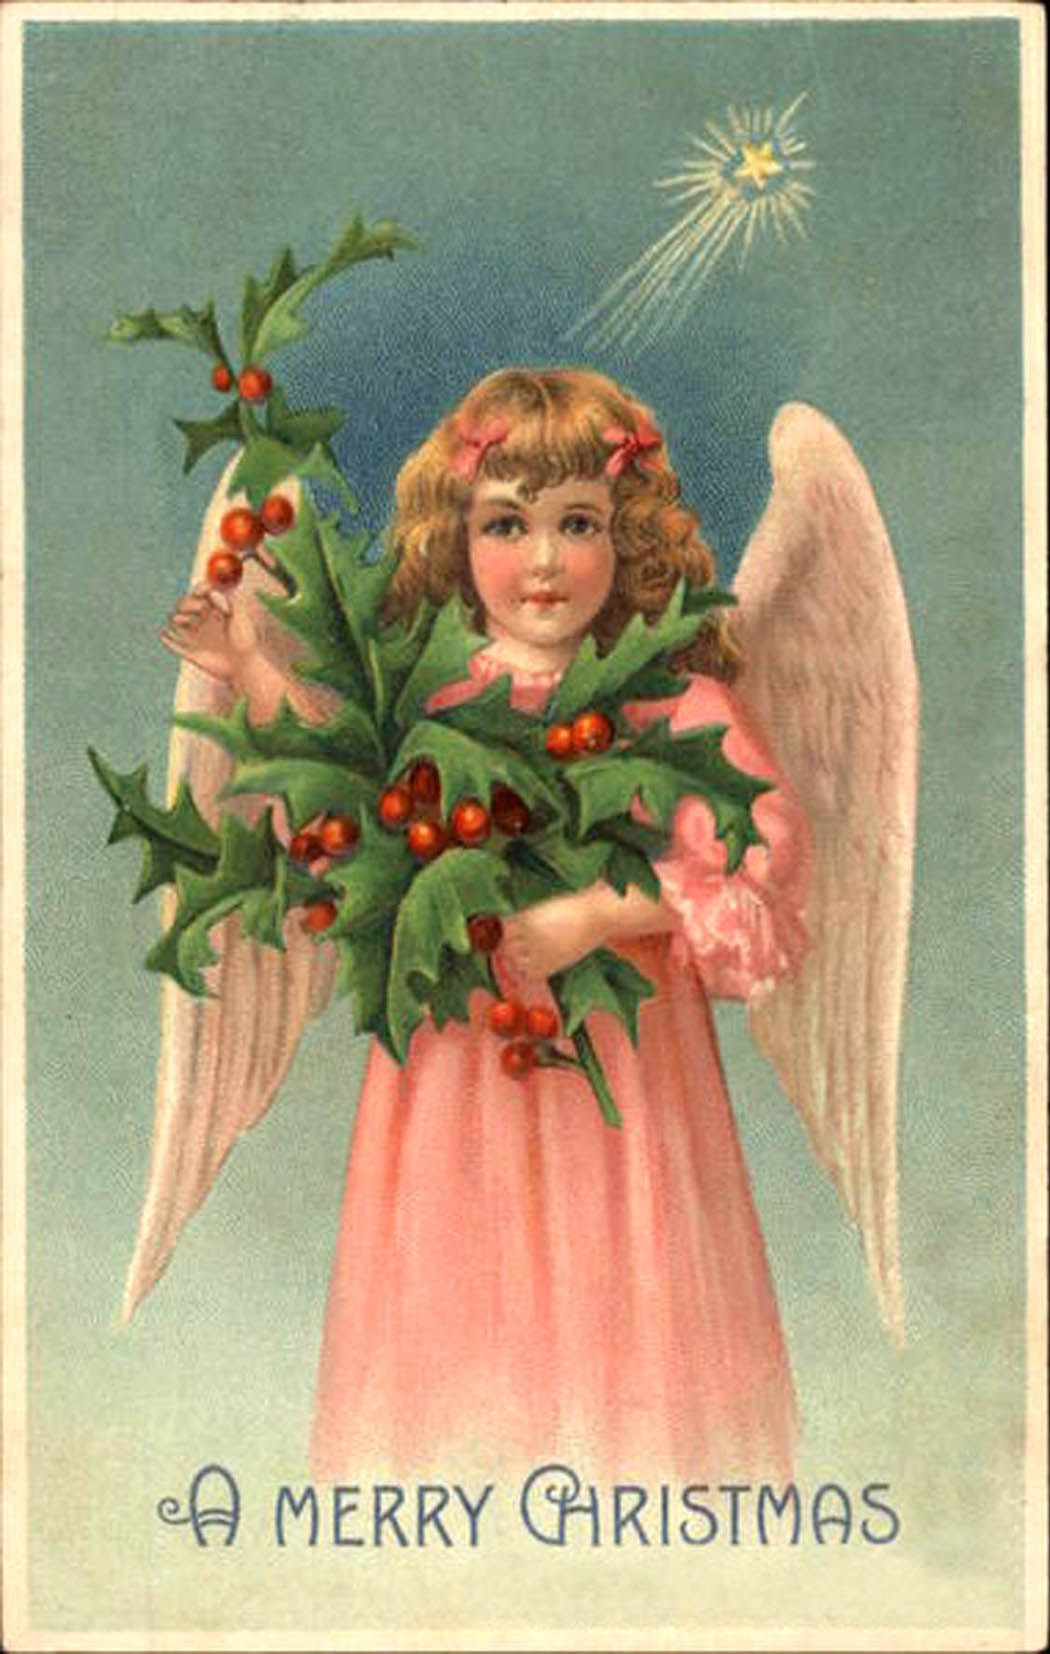 Card of an angel girl in pink dress holding a holly branch